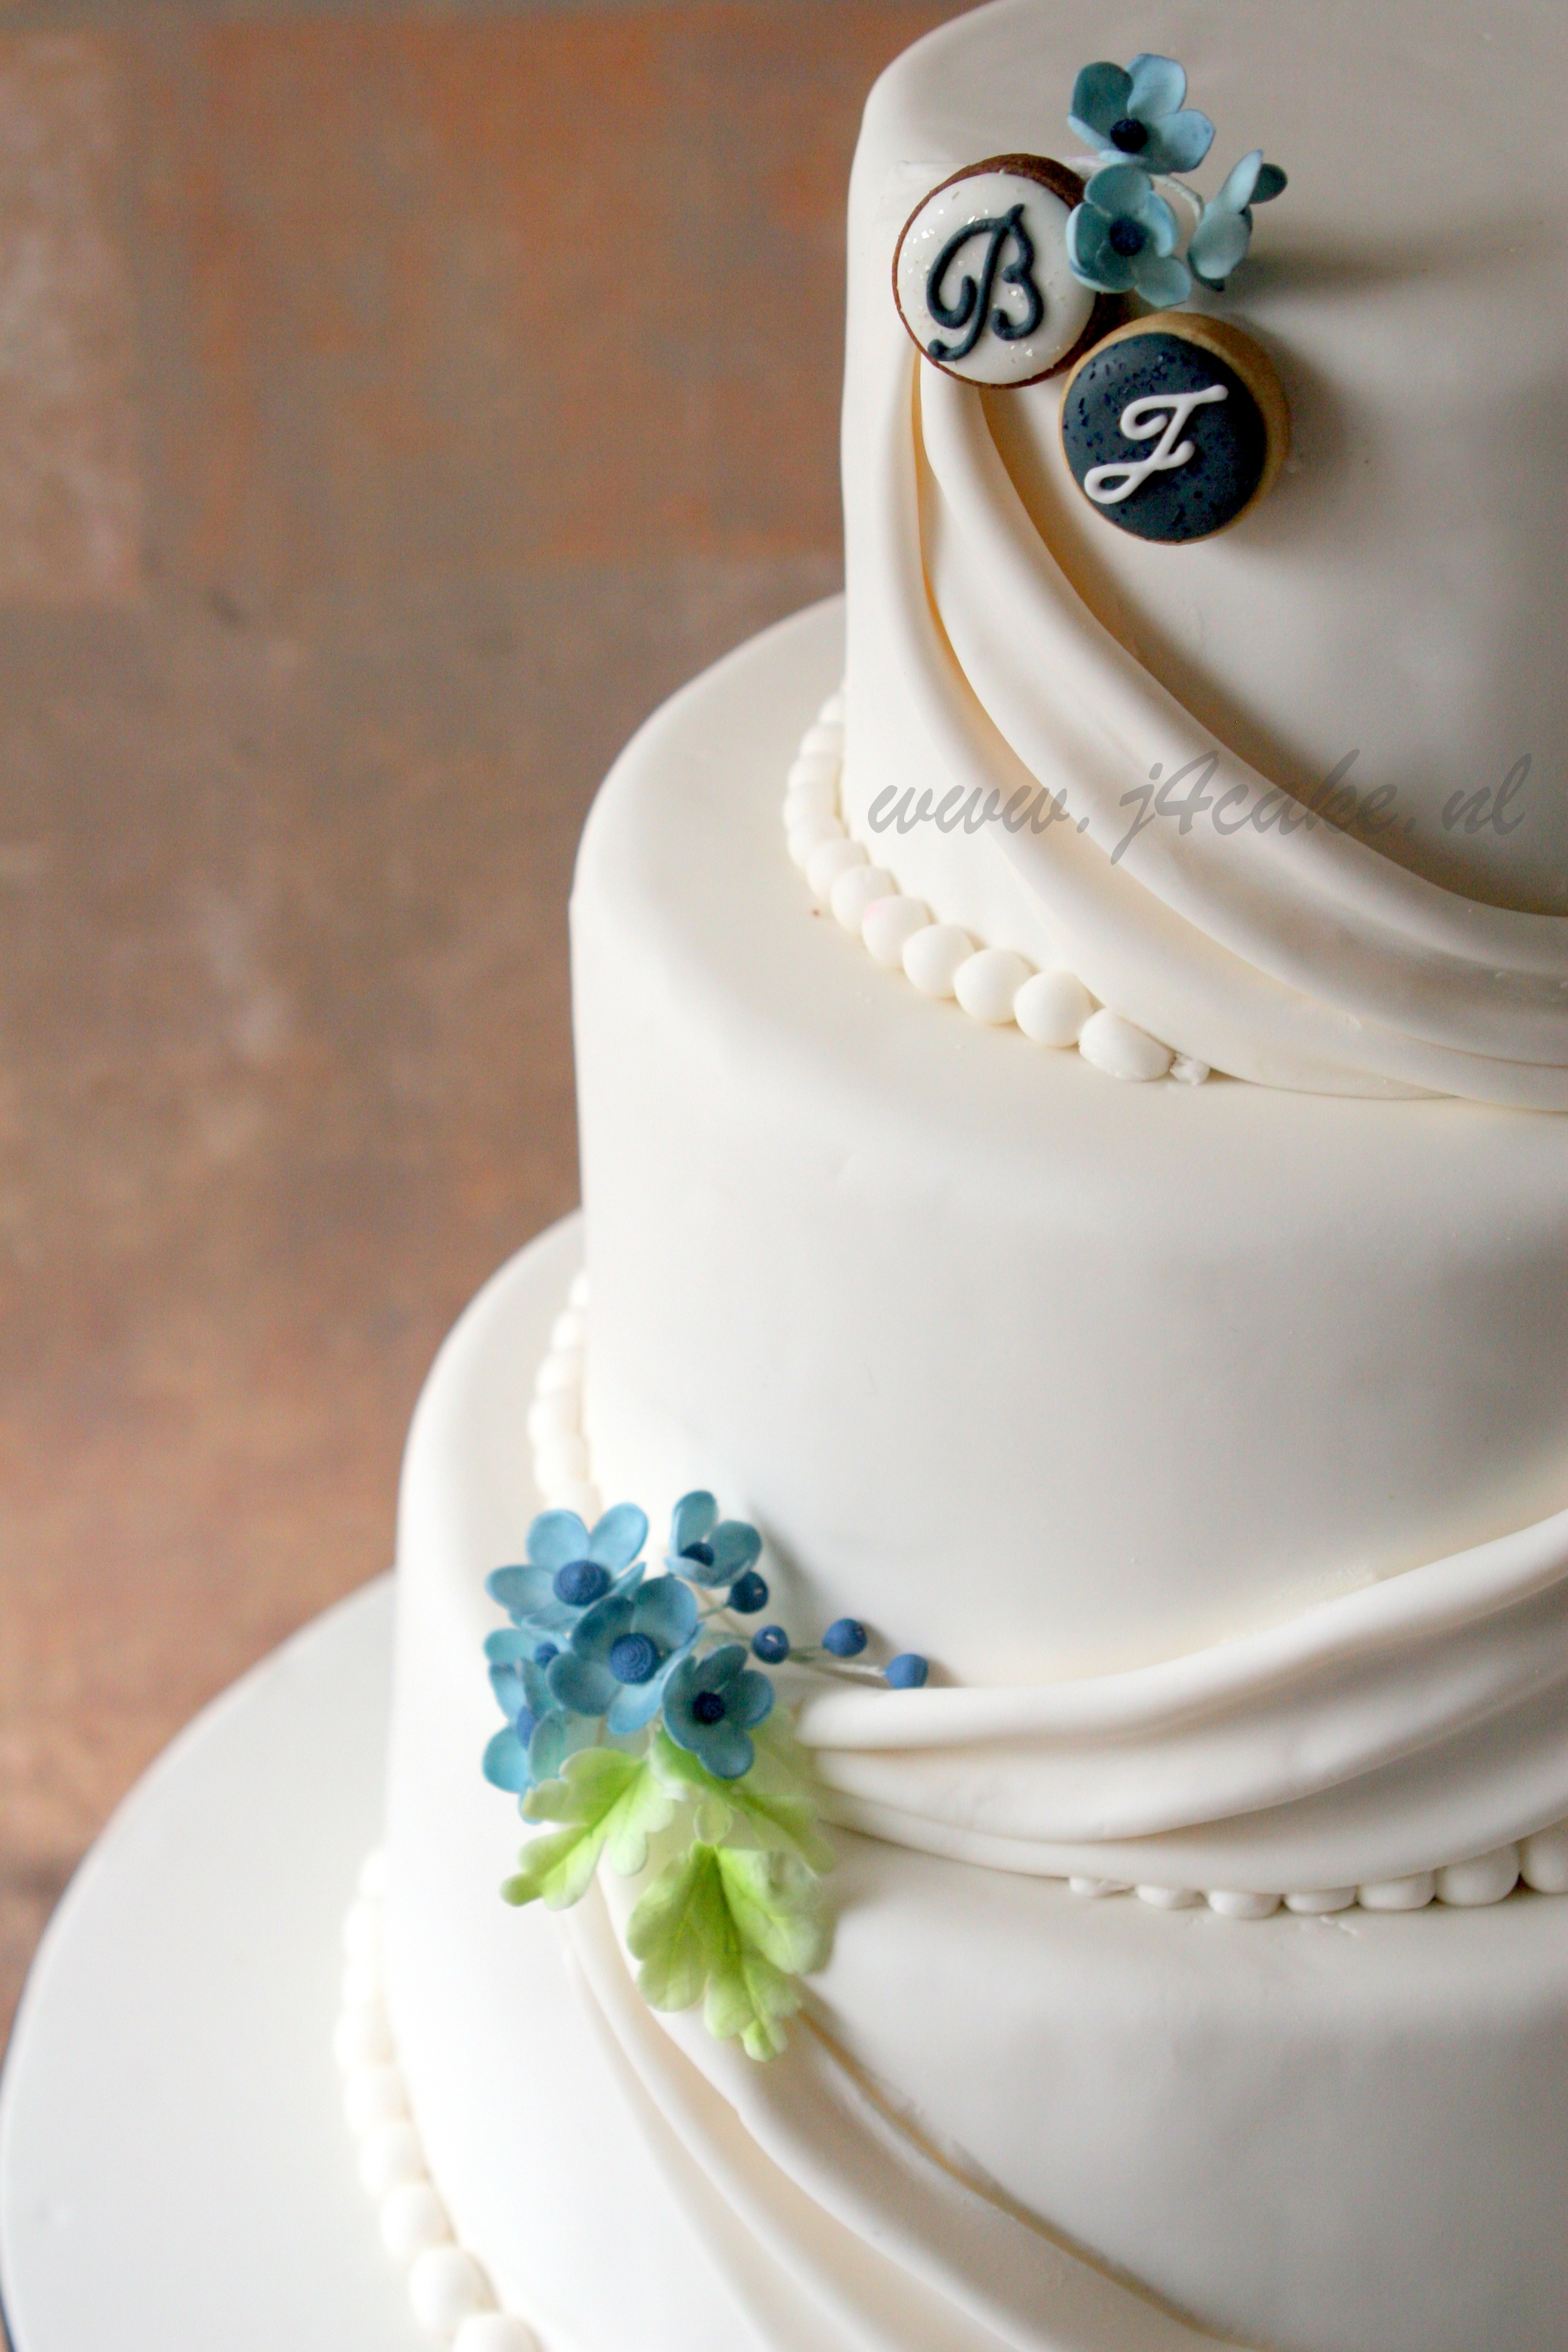 Made A Traditional Wedding Cake In White And Blue - CakeCentral.com